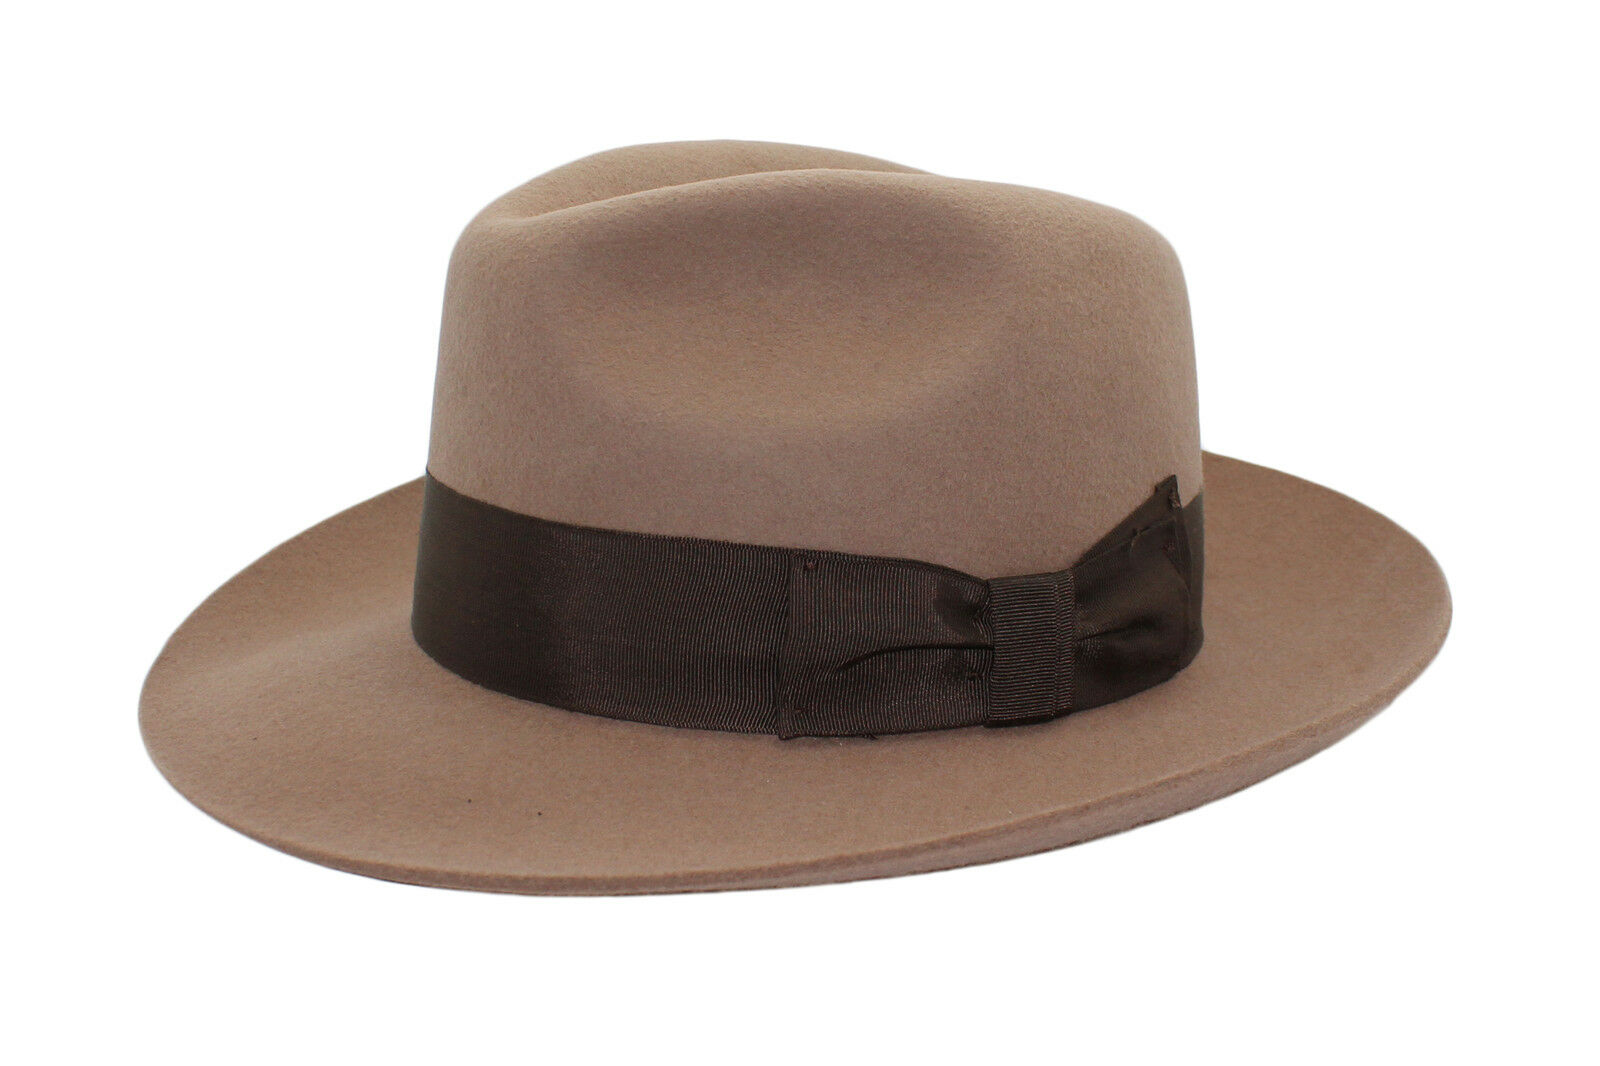 DH Mustard Gents Fedora Felt Trilby Hat with Wider Brim 100/% Wool